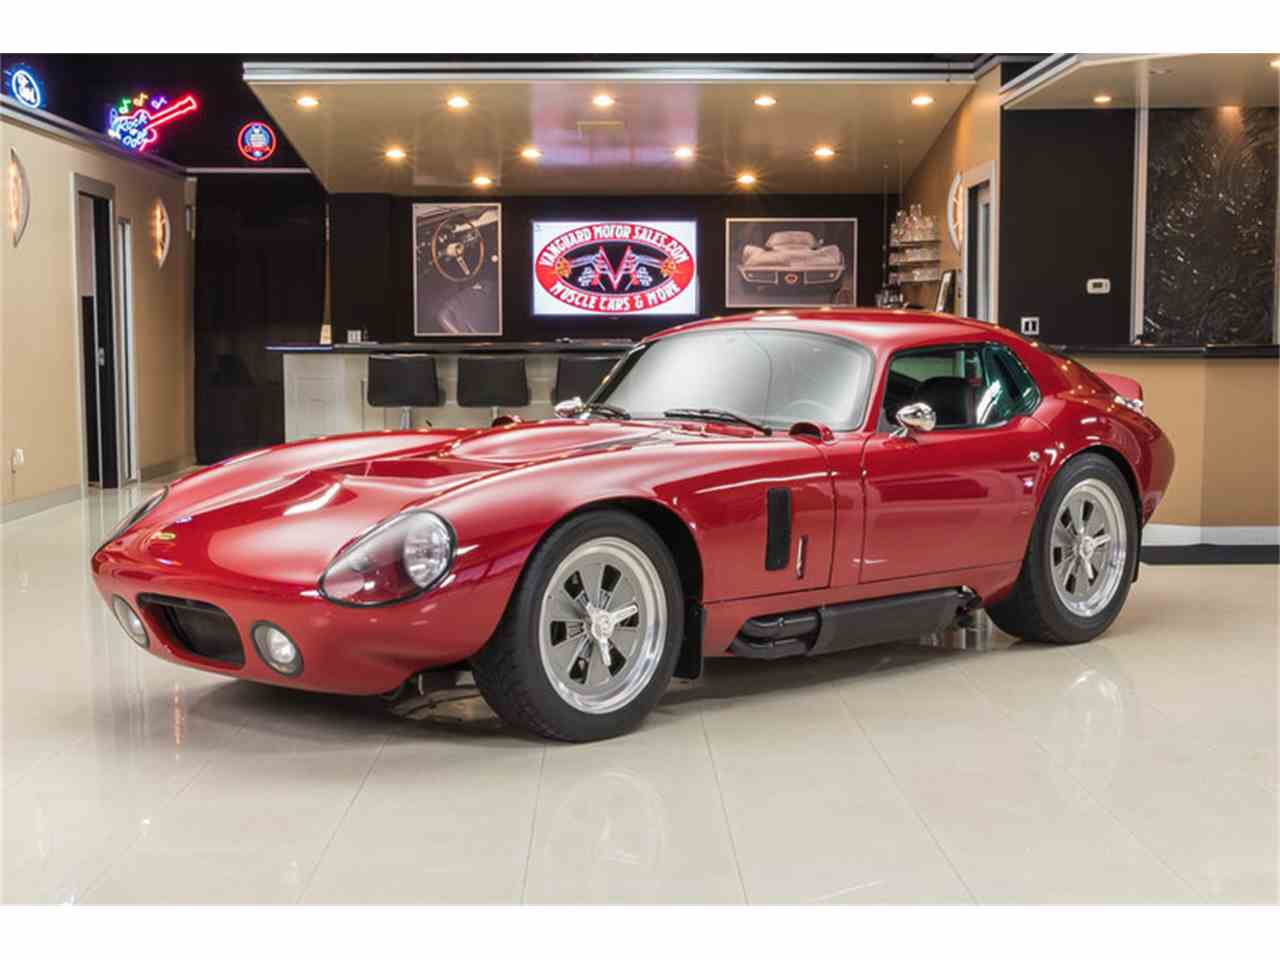 Trucks Under 5000 >> 1965 Shelby Daytona Coupe Superformance for Sale | ClassicCars.com | CC-982844